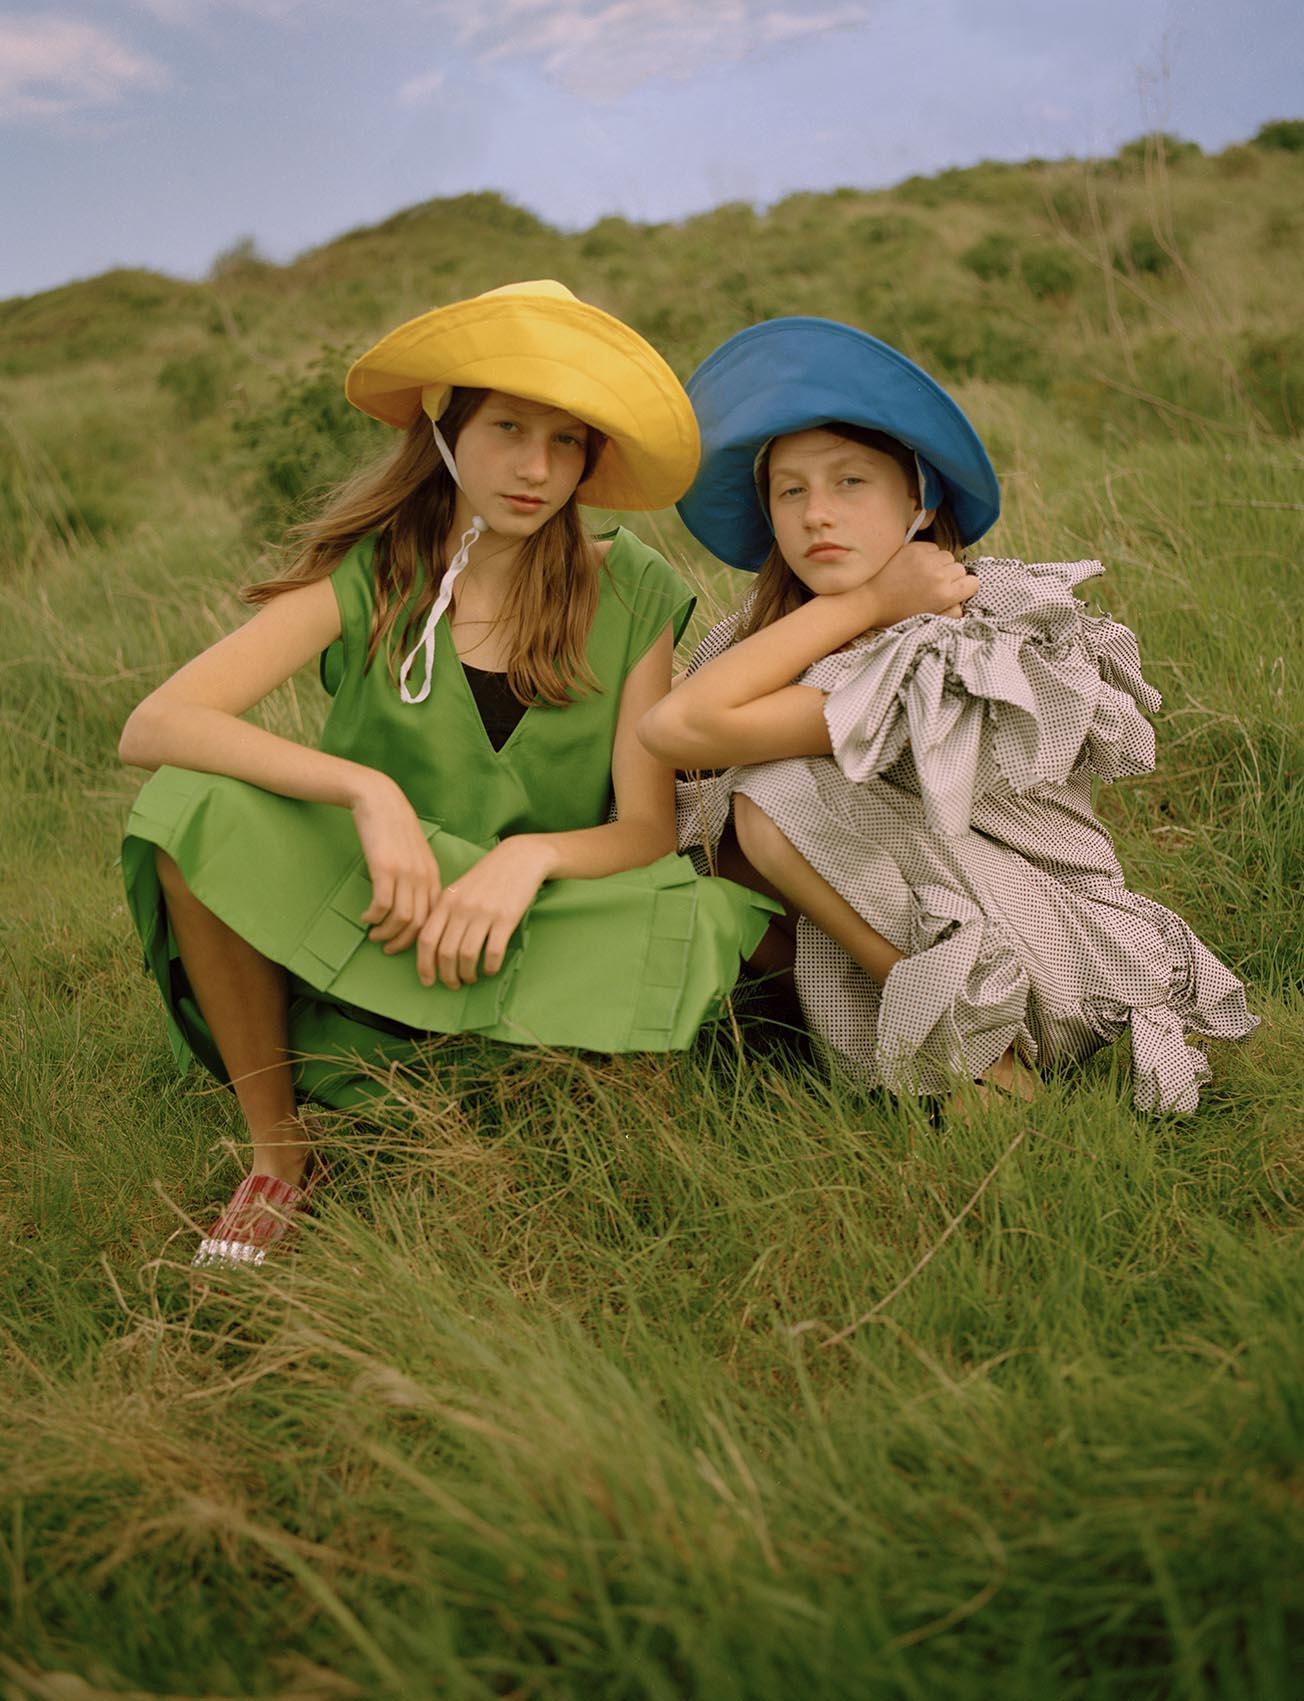 coming-of-age-3-marblemagazine.jpg